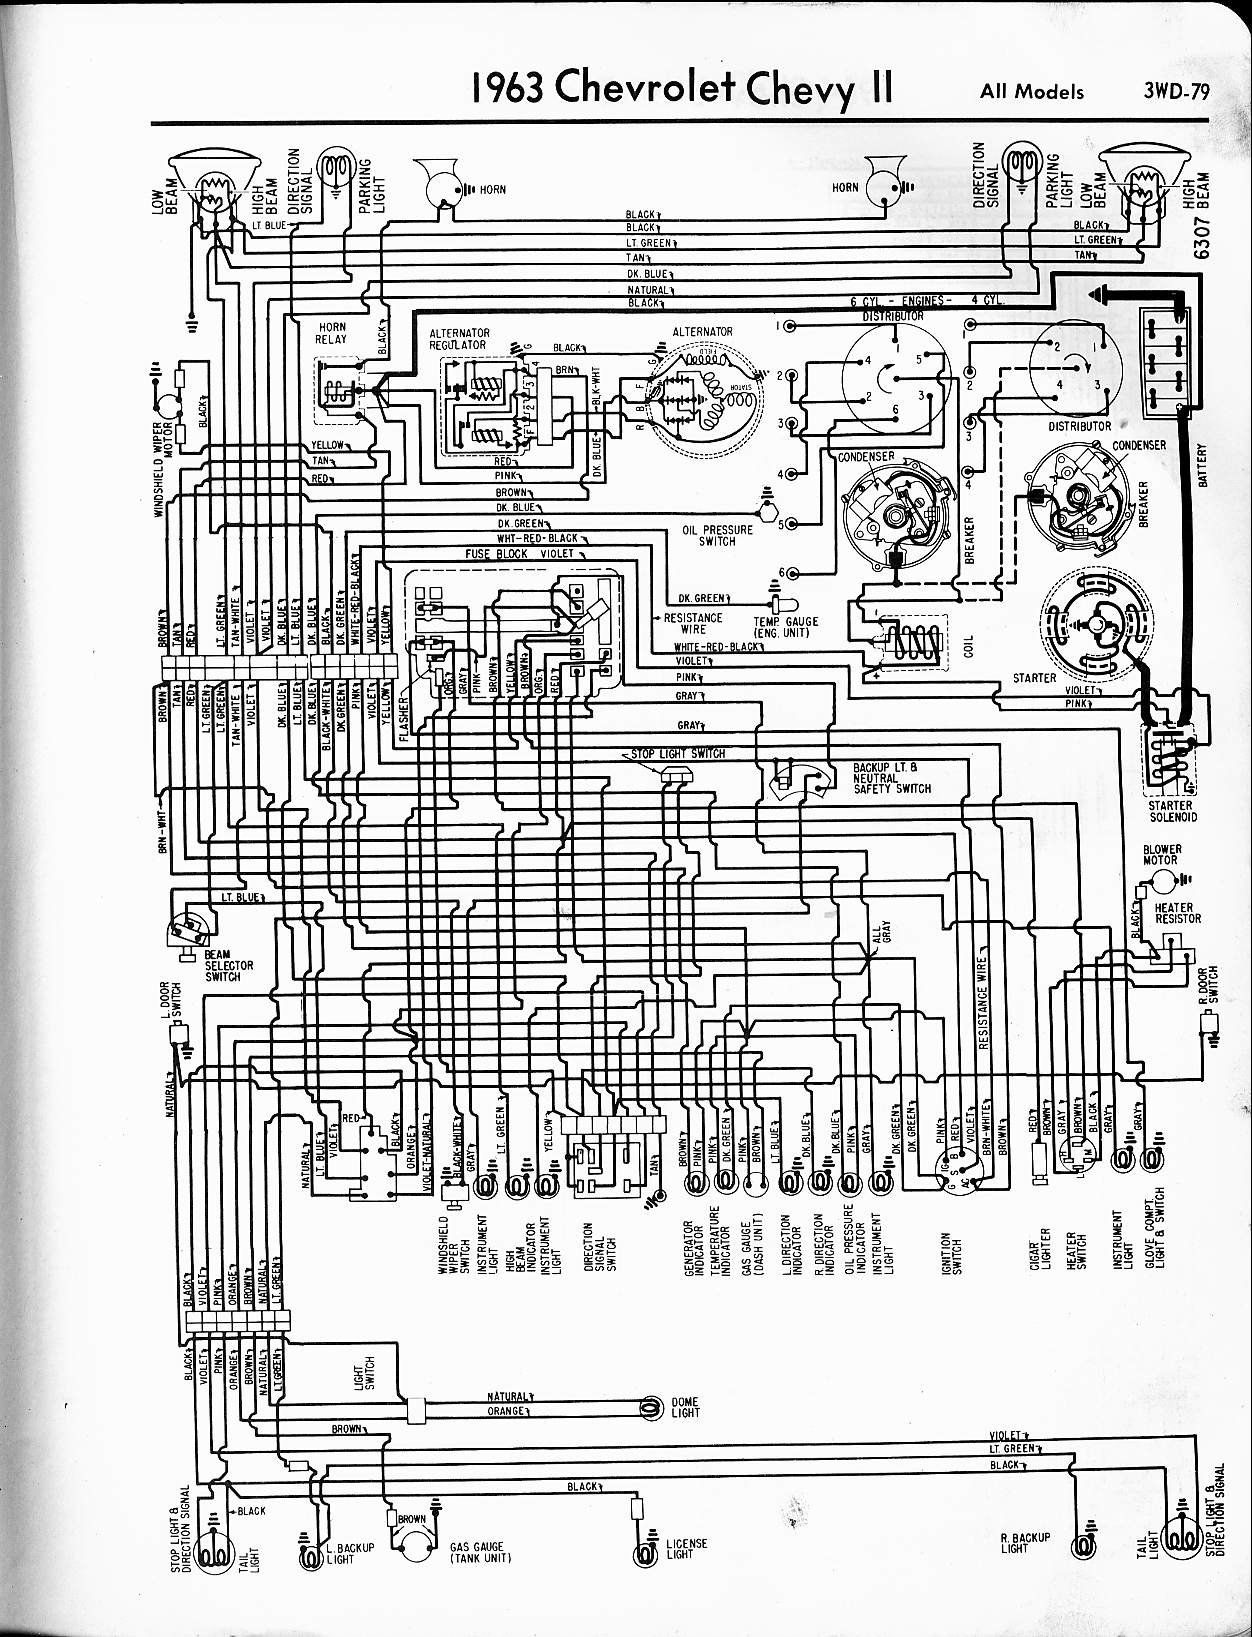 MWireChev63_3WD 079?resize\\\\\\\=665%2C869 1965 chevrolet impala ignition wiring 1965 chevrolet truck 1965 chevy c10 wiring diagram at reclaimingppi.co